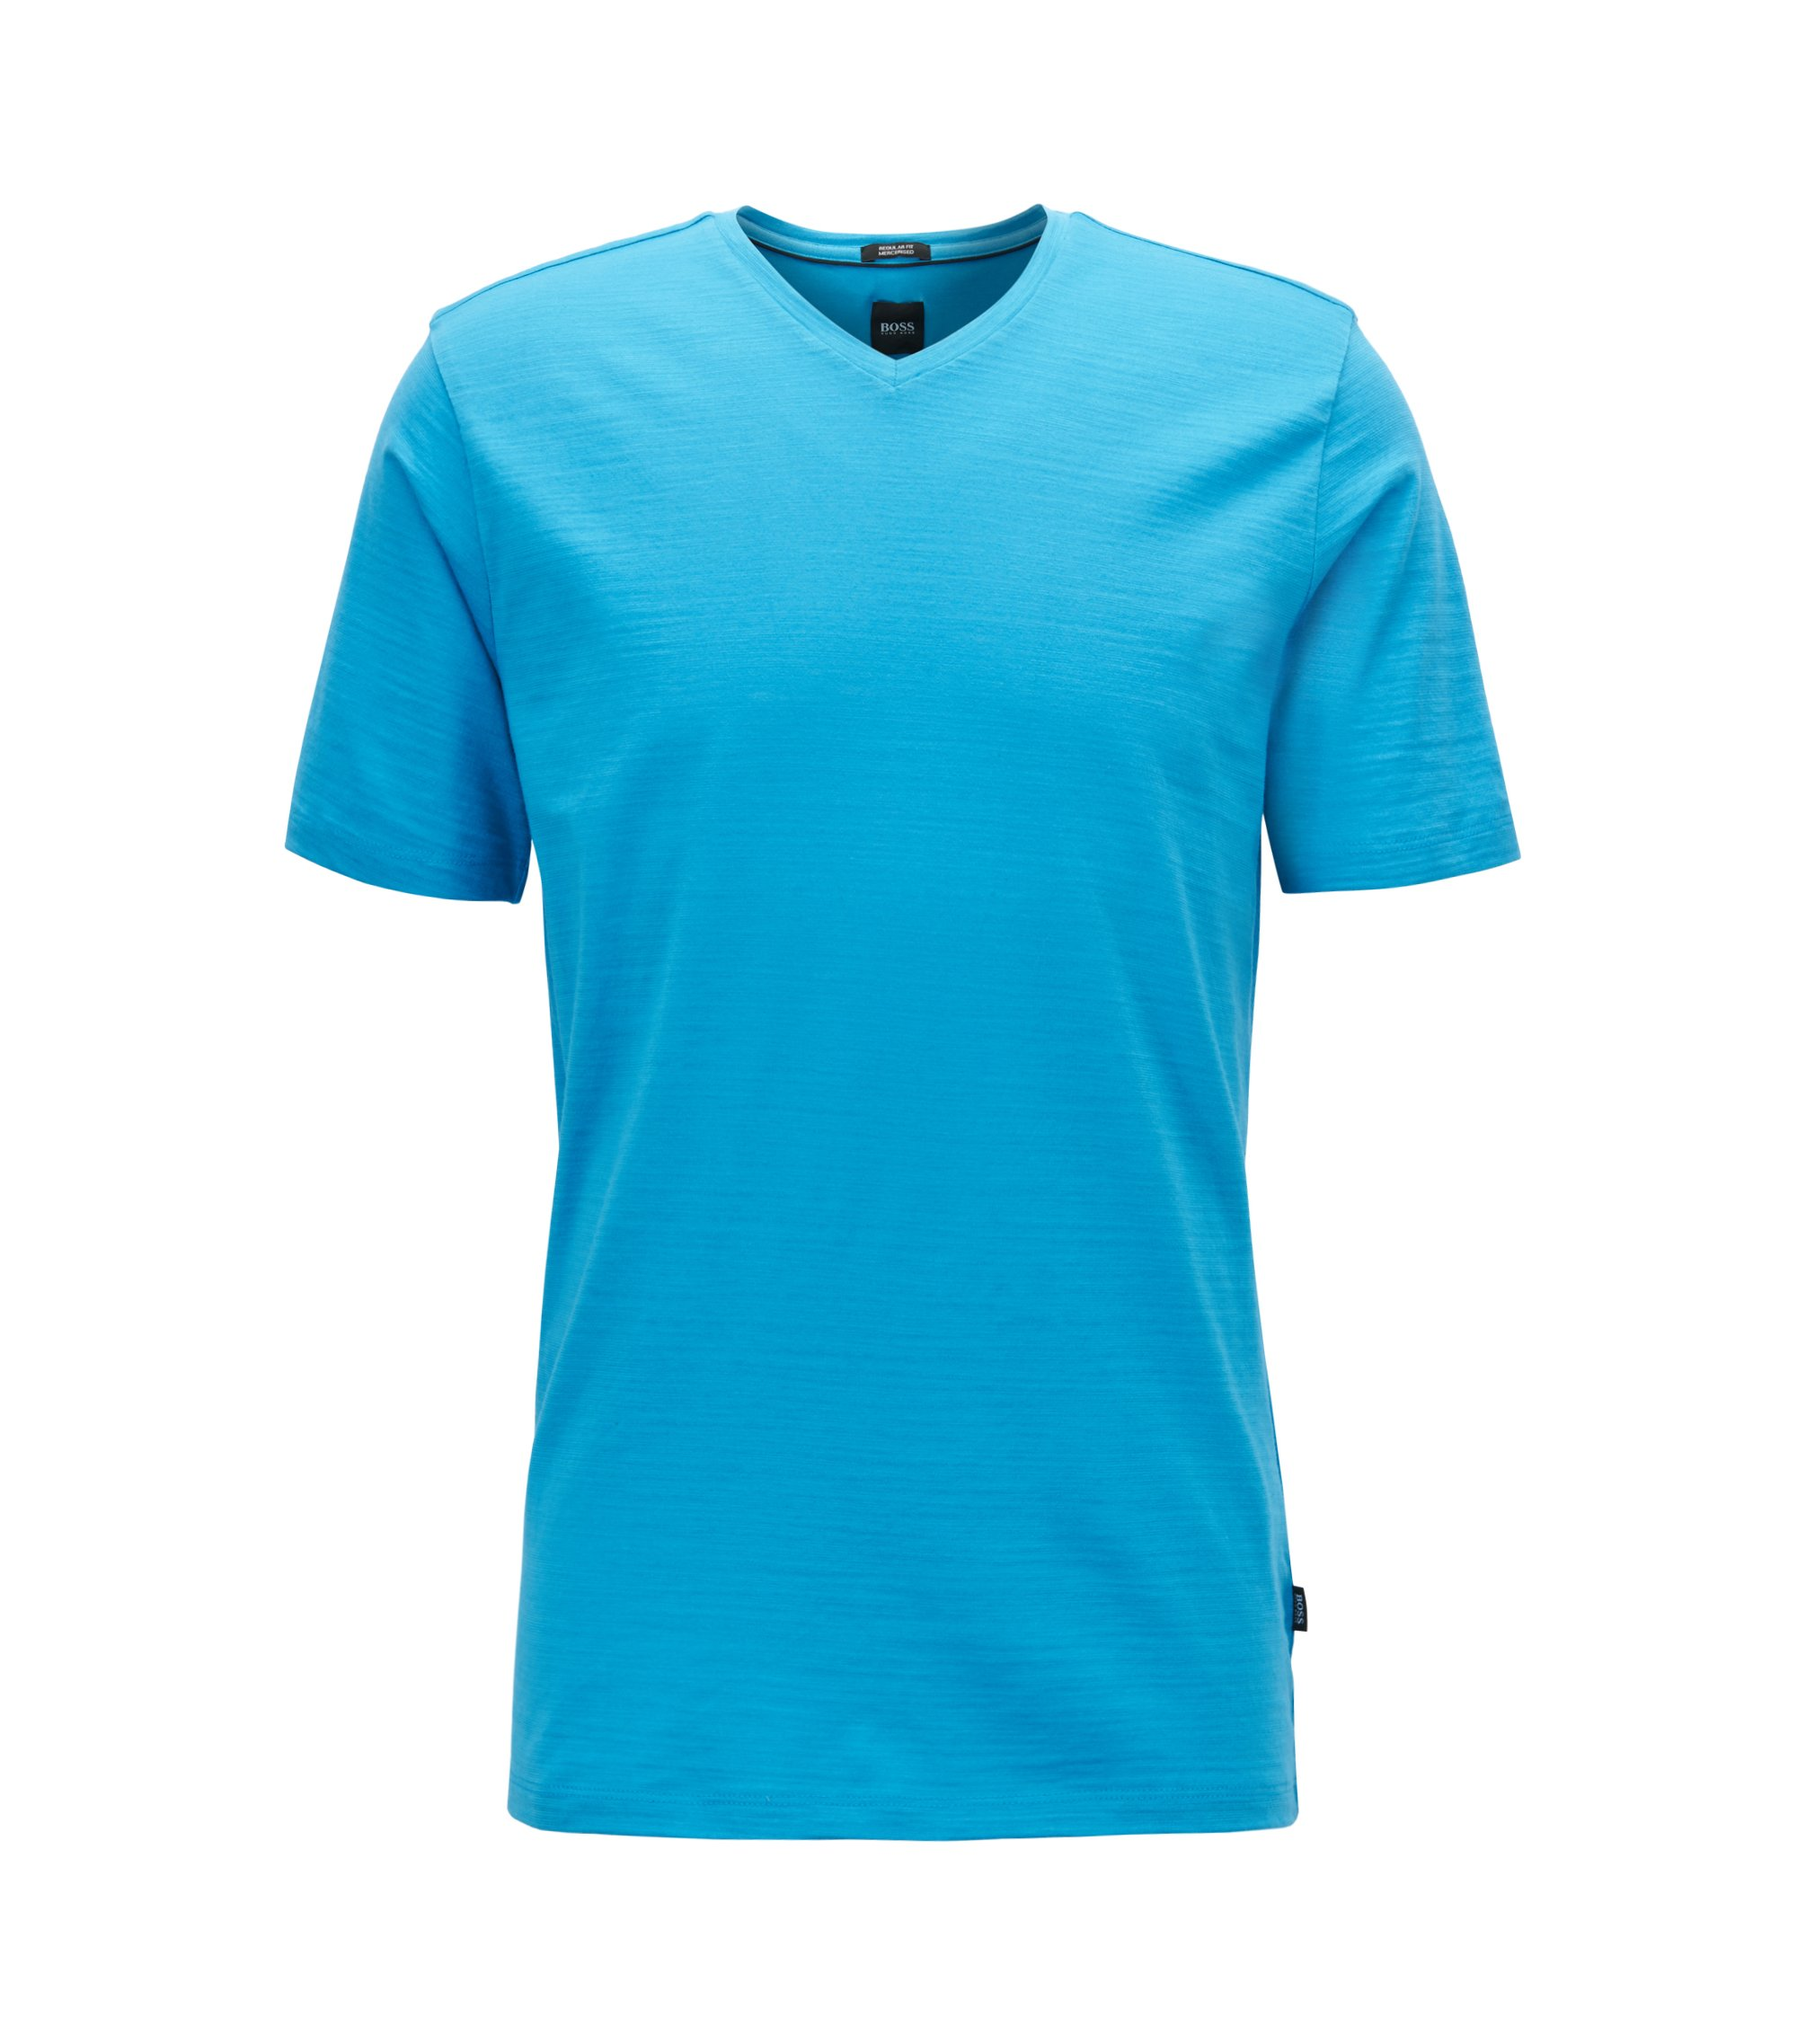 Regular-fit T-shirt in mercerised cotton, Open Blue